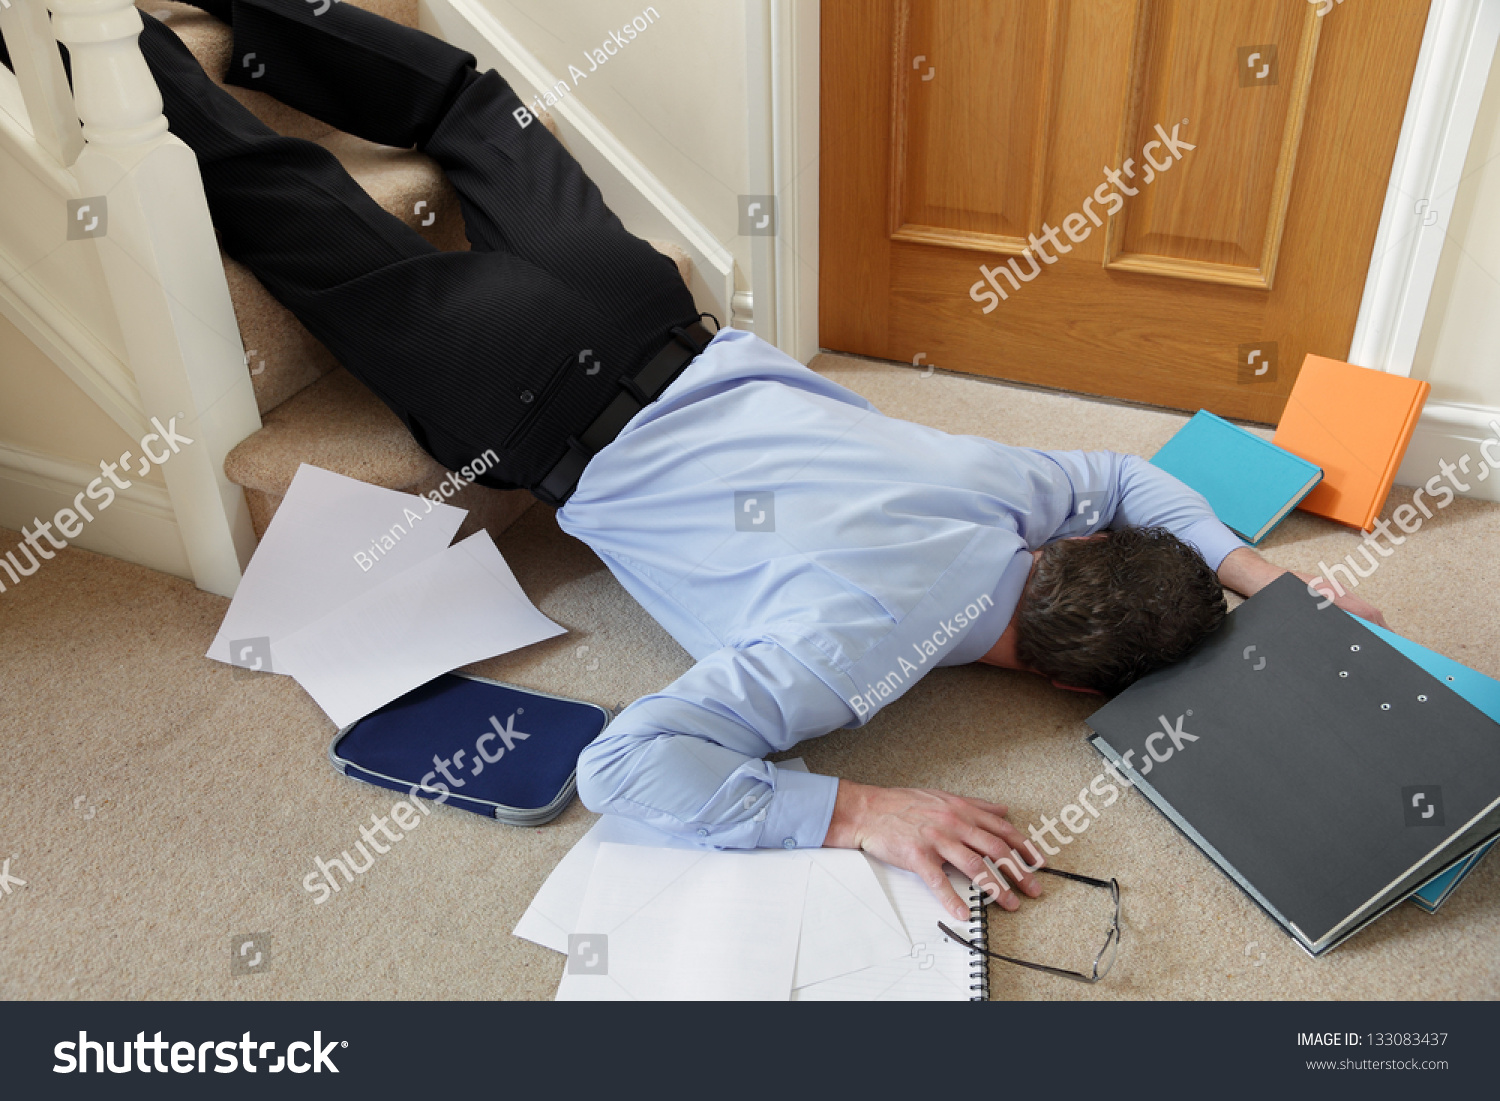 Business man falling down the stairs in the office concept for accident and insurance injury - Office outs onder de trap ...